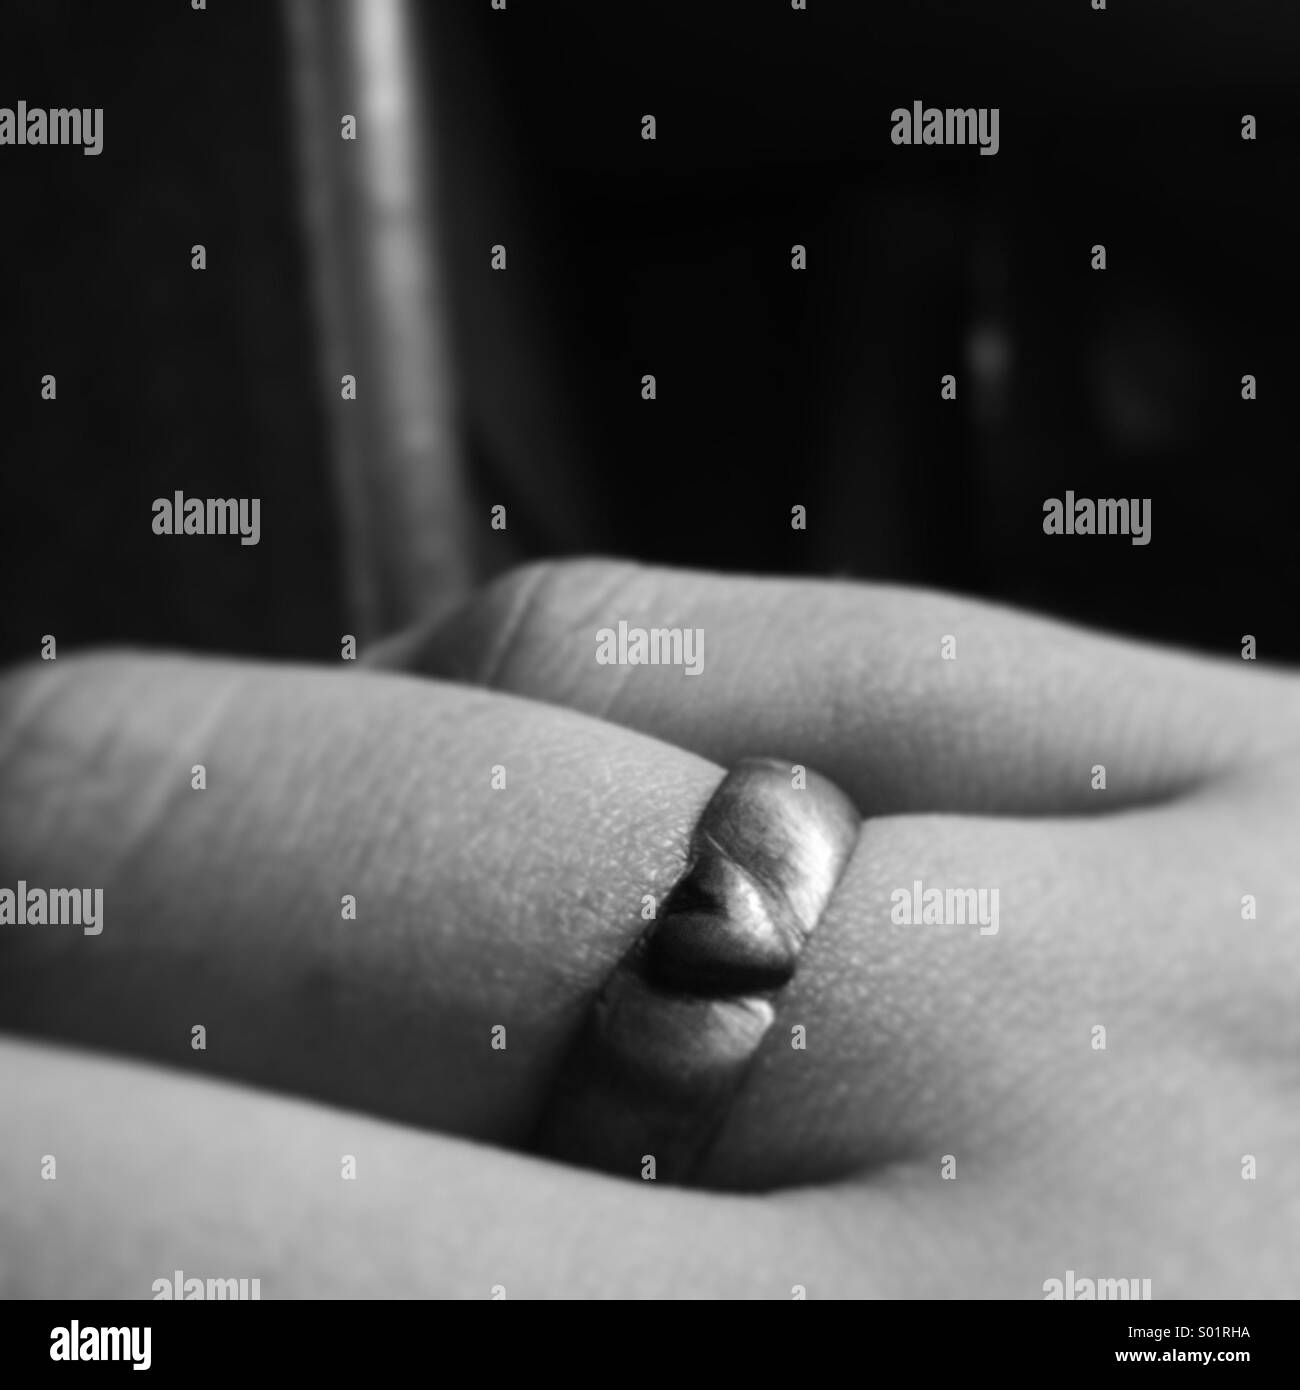 heart ring - Stock Image